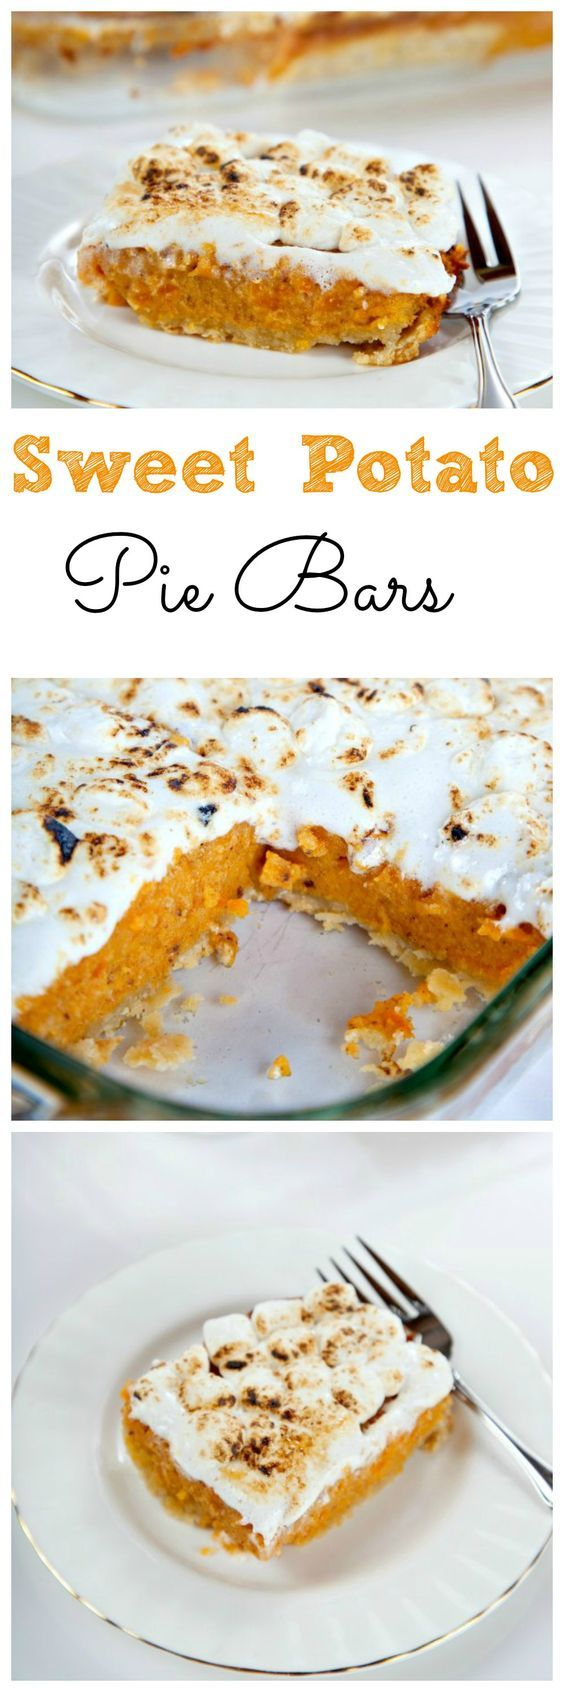 Sweet Potato Pie Bars: A flaky cream cheese crust filled with brown sugar sweet potatoes and topped with gooey marshmallows. Perfect Thanksgiving Dessert!